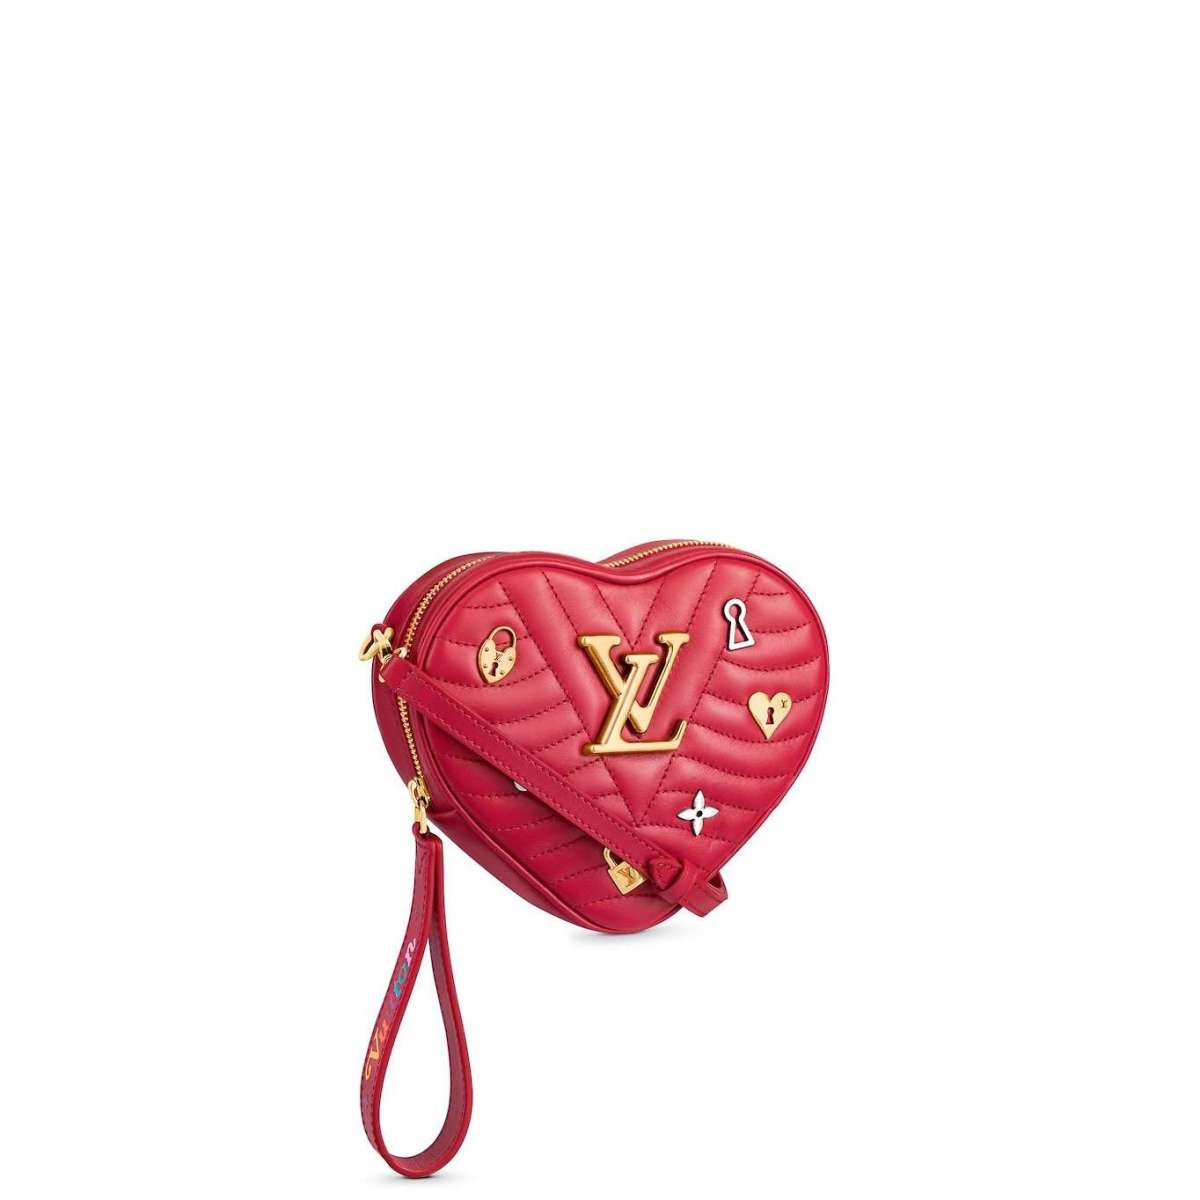 Louis Vuitton Heart Bag